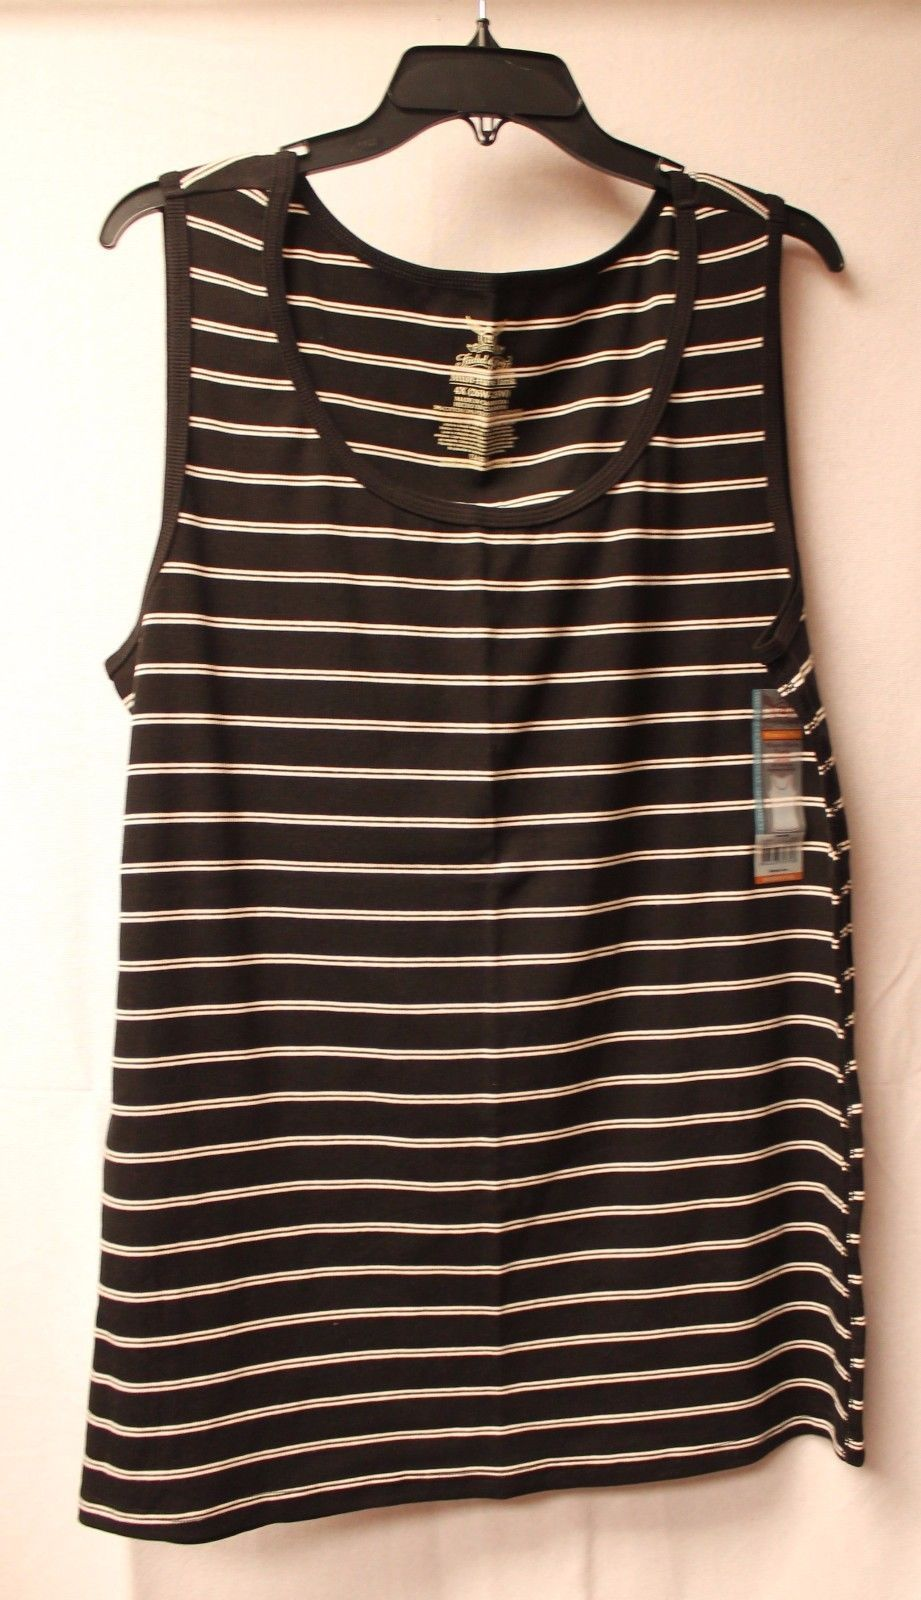 48cb7482aa260 S l1600. S l1600. Previous. NEW FADED GLORY WOMENS PLUS SIZE 4X 28W BLACK   WHITE  STRIPED RIB TANK TOP SHIRT